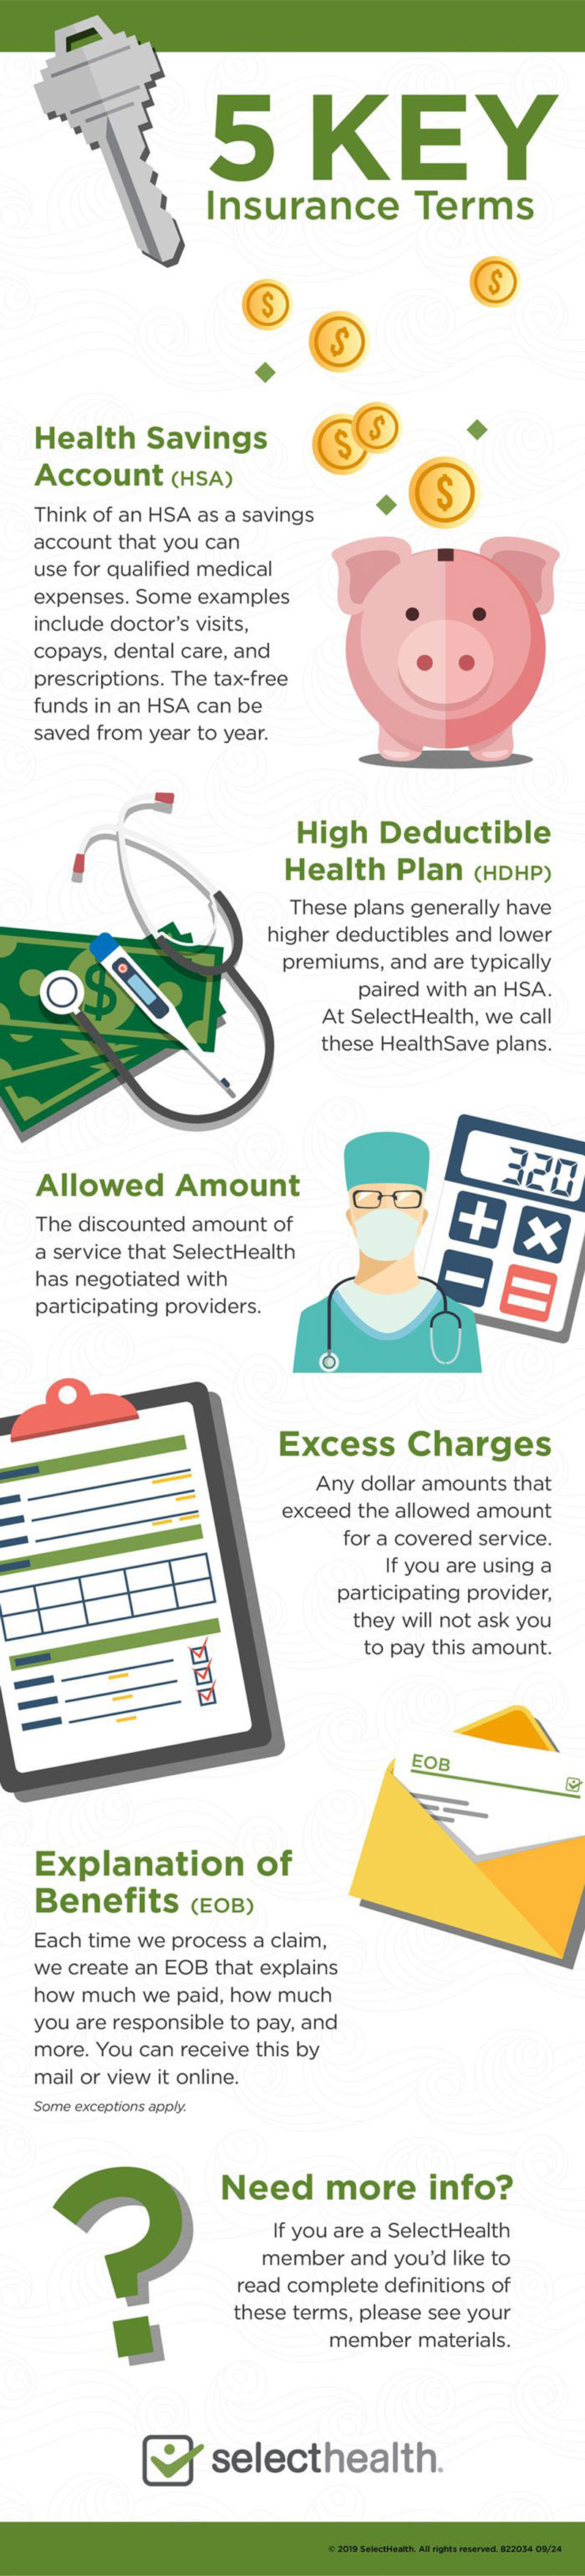 5 Key Insurance Terms Infographic